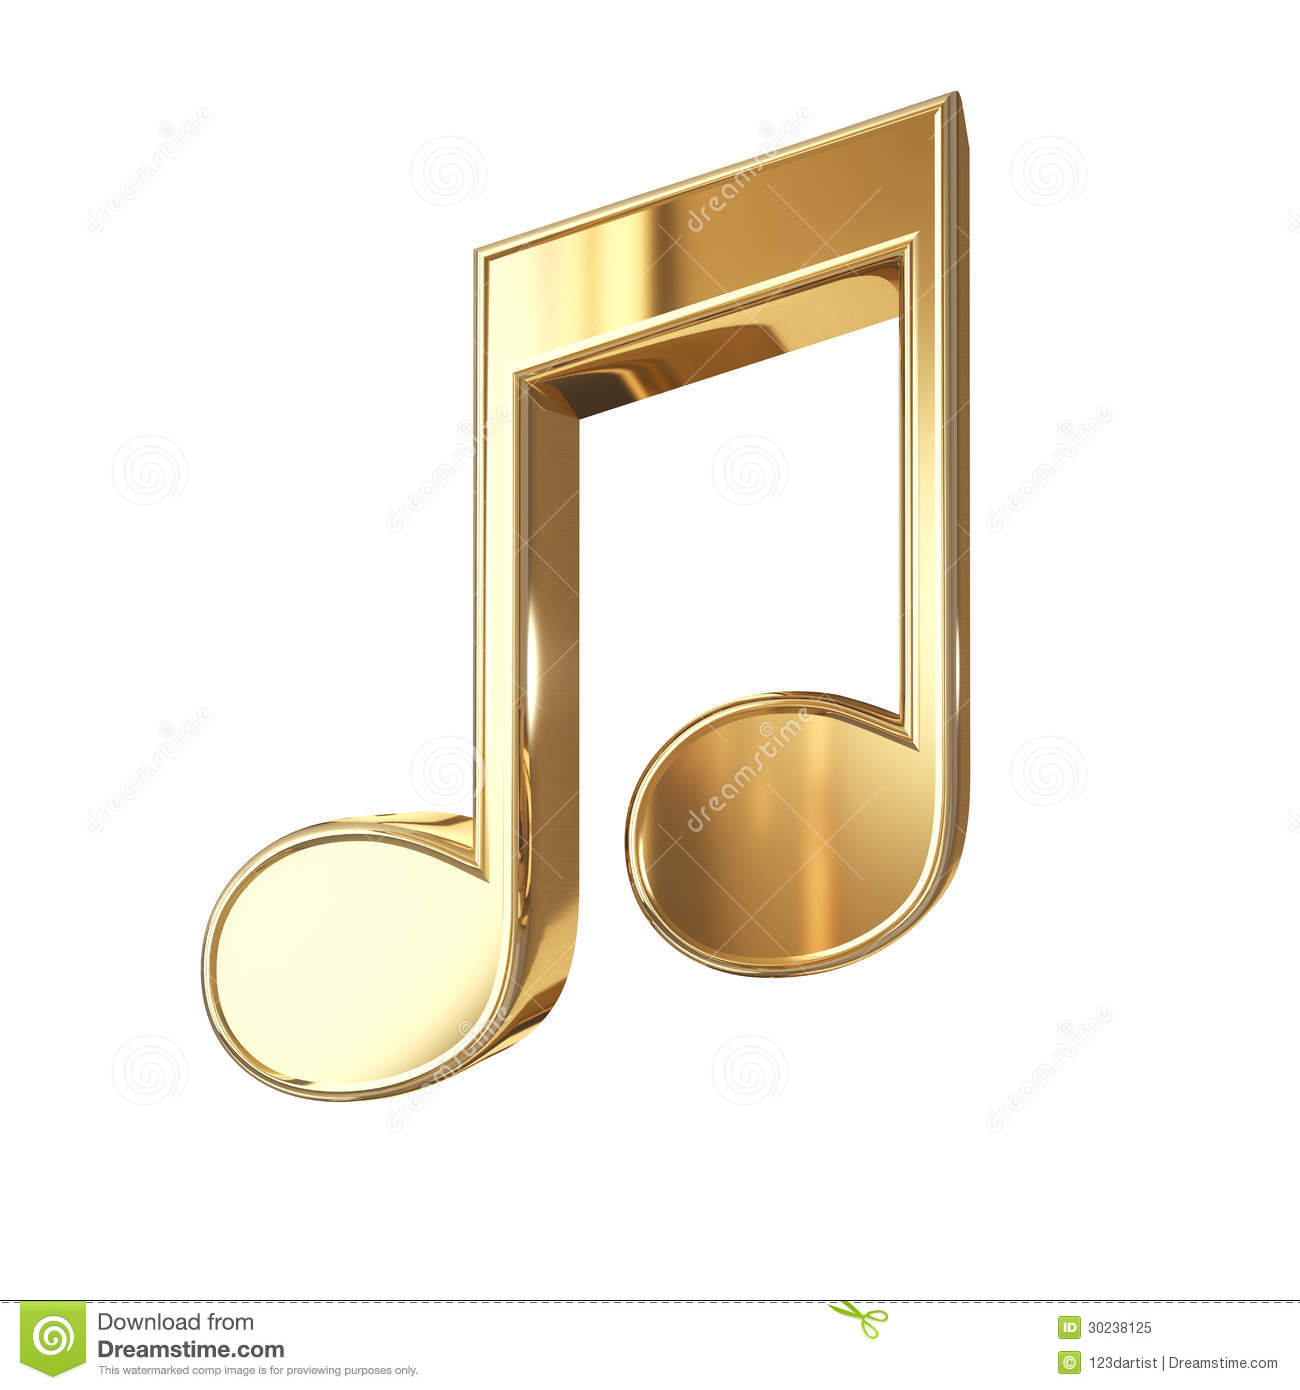 Golden music note isolated on white stock illustration download golden music note isolated on white stock illustration illustration of background line thecheapjerseys Gallery